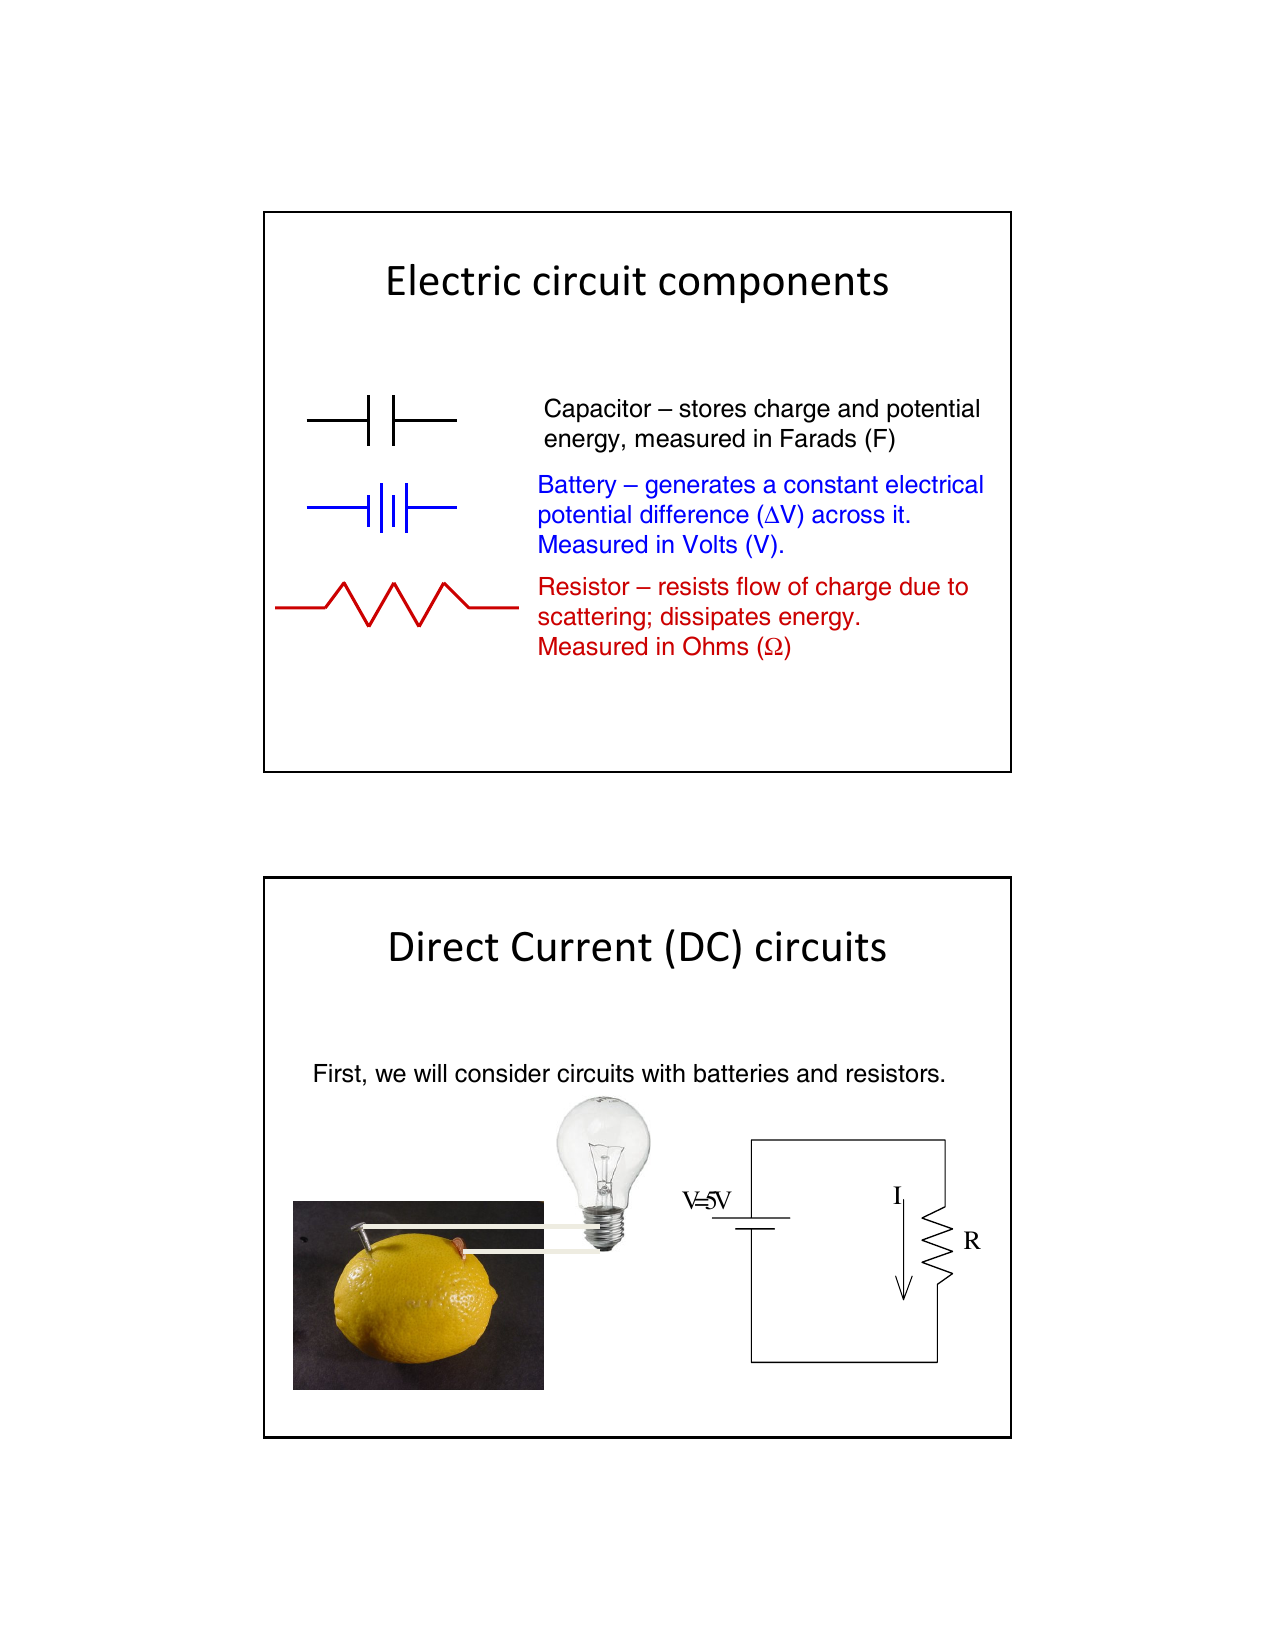 Electric Circuit Components Direct Current Dc Circuits Constant This Can Be Adjusted To